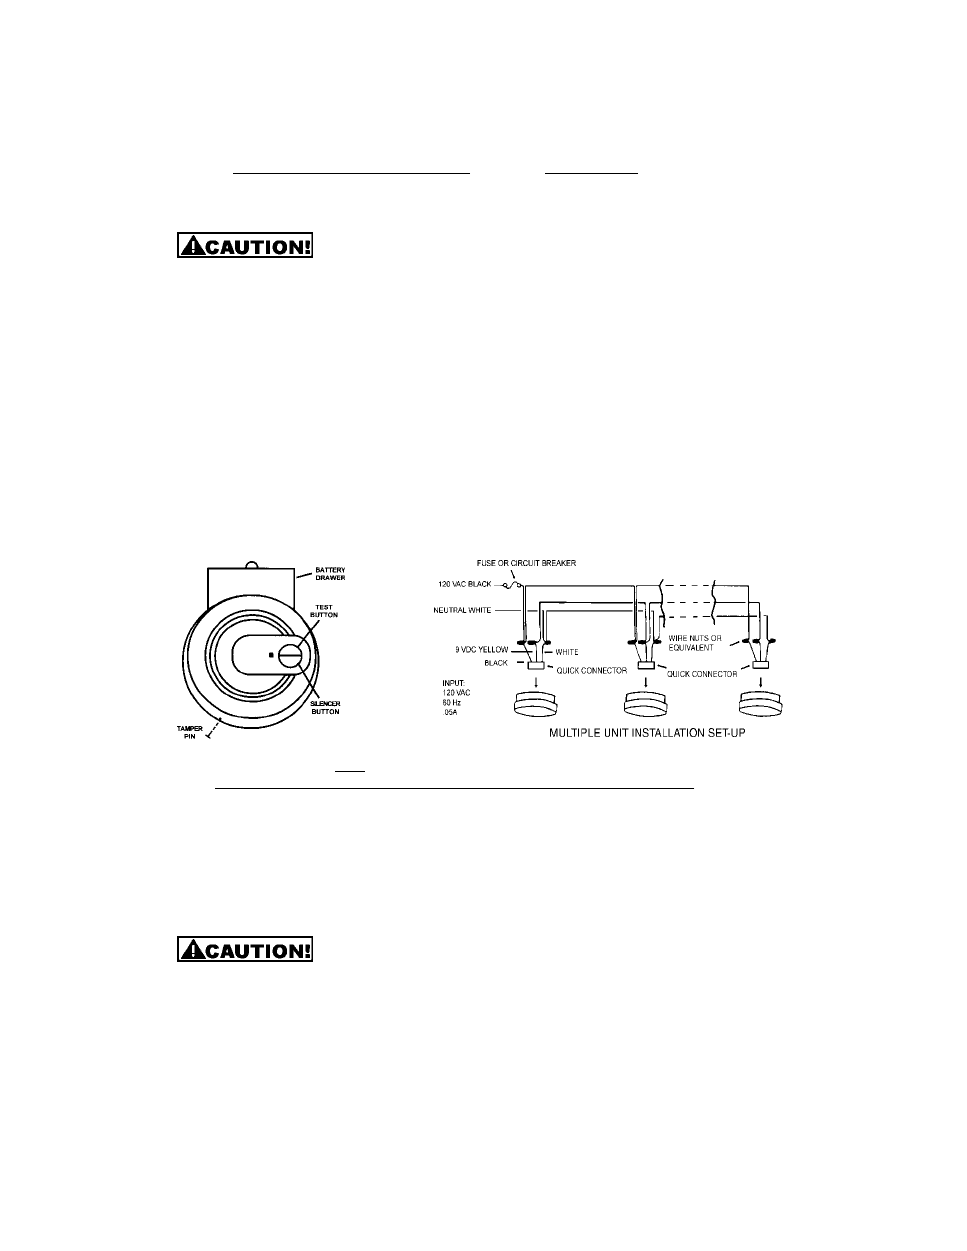 Universal Security Instruments Usi 5204 Users Manual Page 4 Apollo Xp95 Smoke Detector Wiring Diagram Background Image